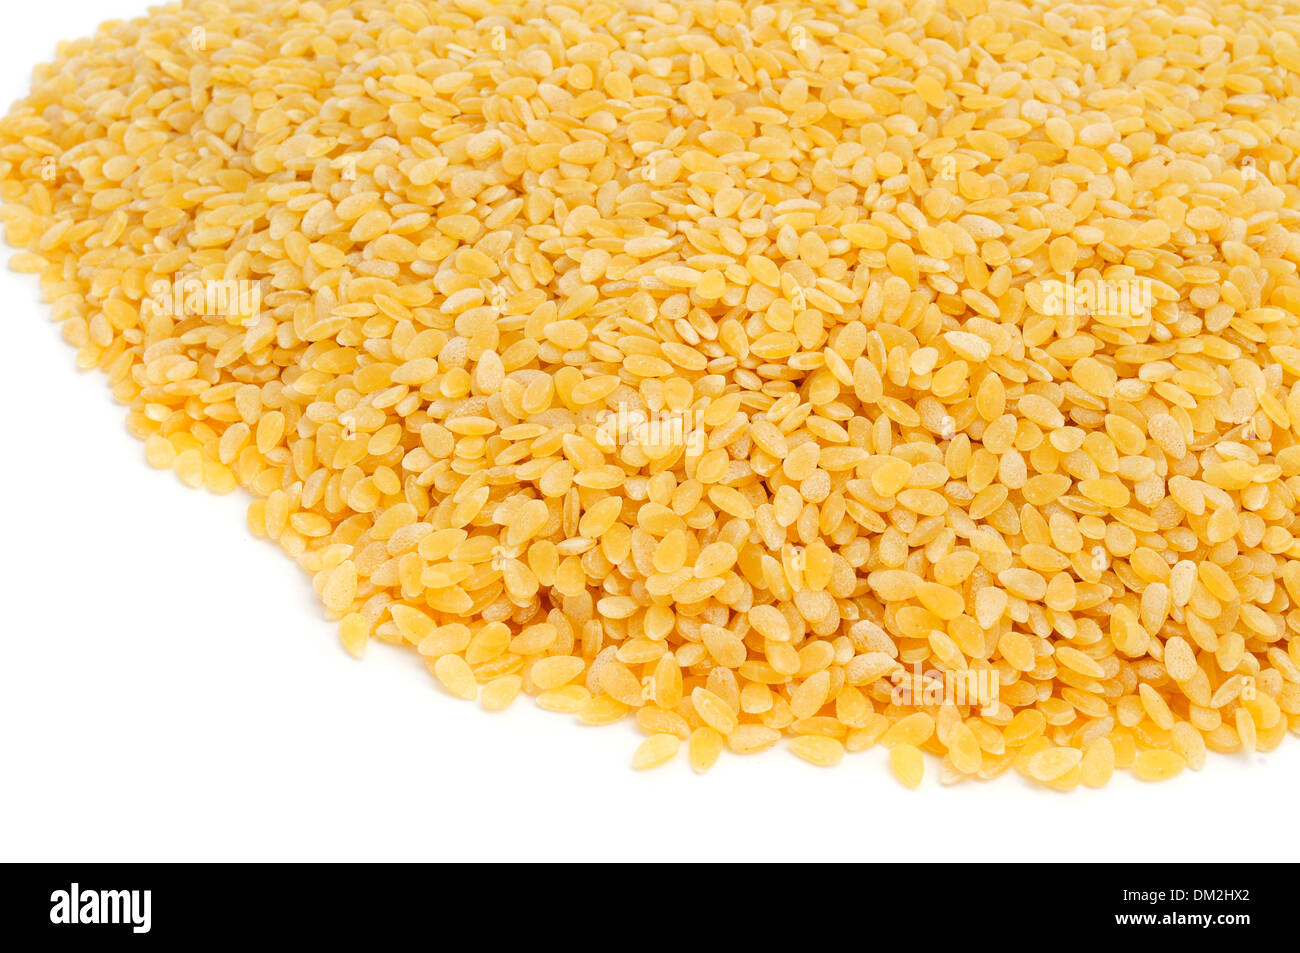 a pile of uncooked pastina, a variety of tiny pieces of pasta used in broth soups, on a white background - Stock Image